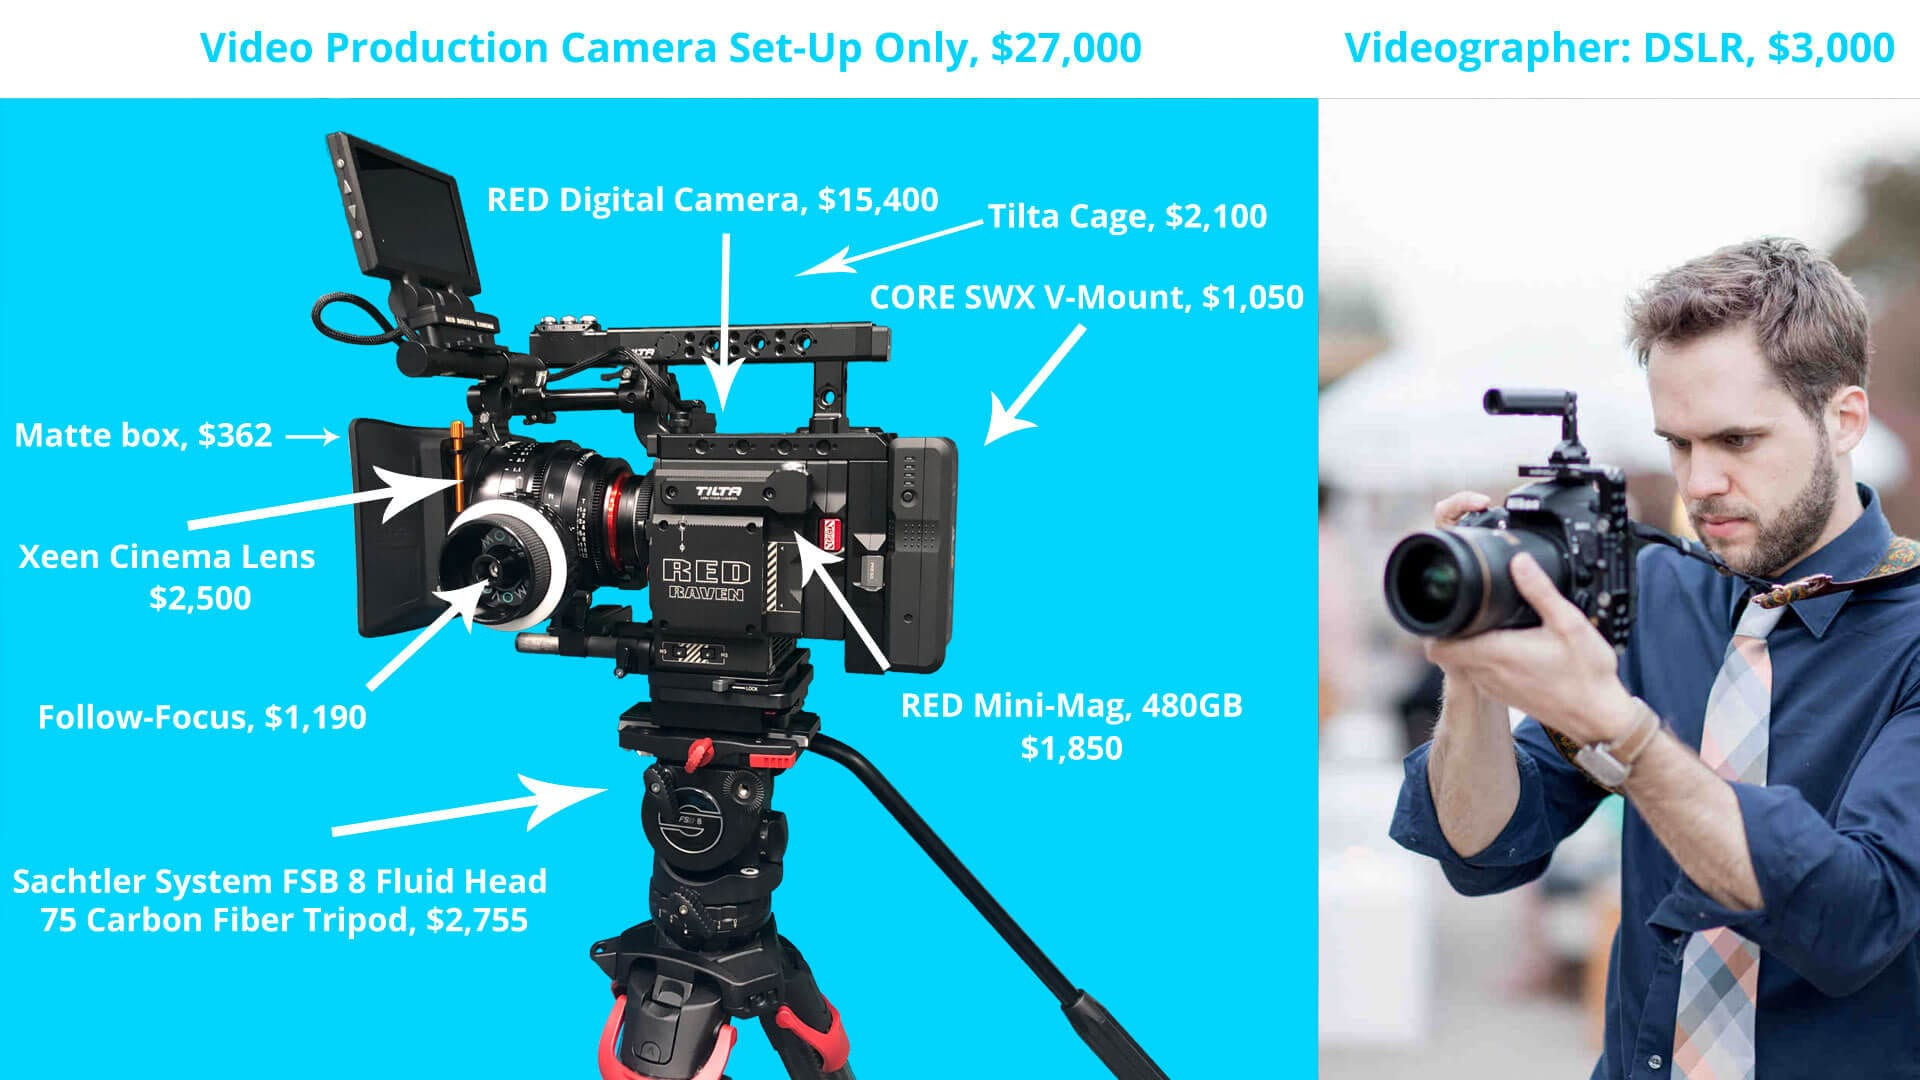 Why hire professional video production over a videographer